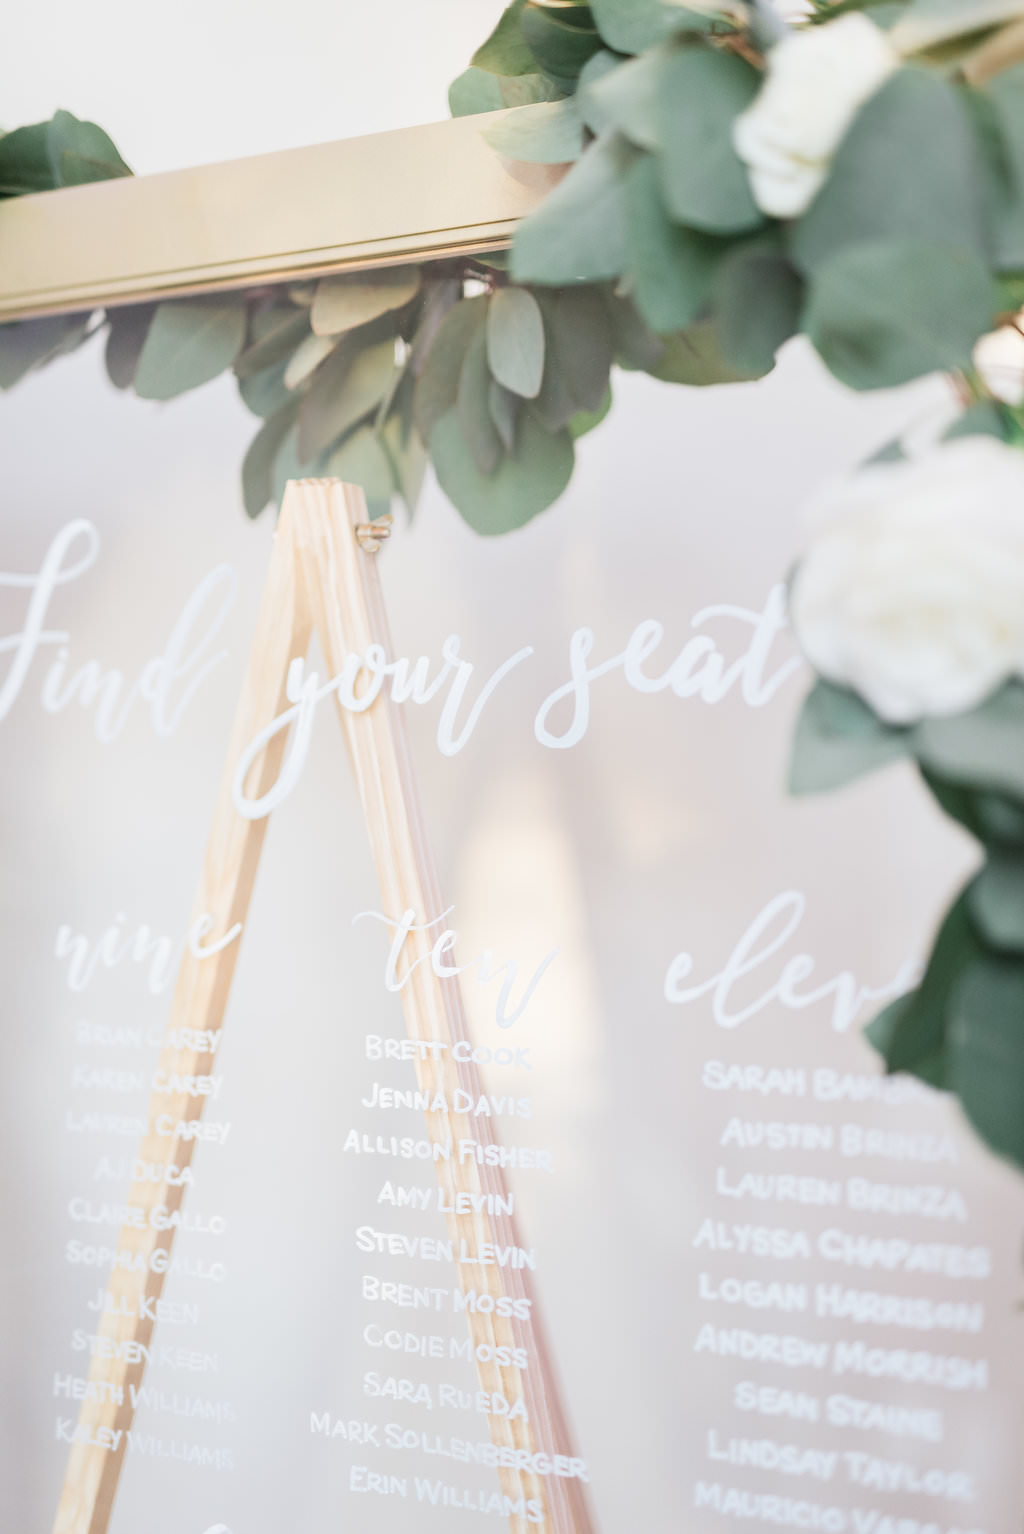 Classic Glass Window Pane In Gold Frame Wedding Reception Guest Seating Chart With Greenery Garland Marry Me Tampa Bay Local Real Wedding Inspiration Vendor Recommendation Reviews